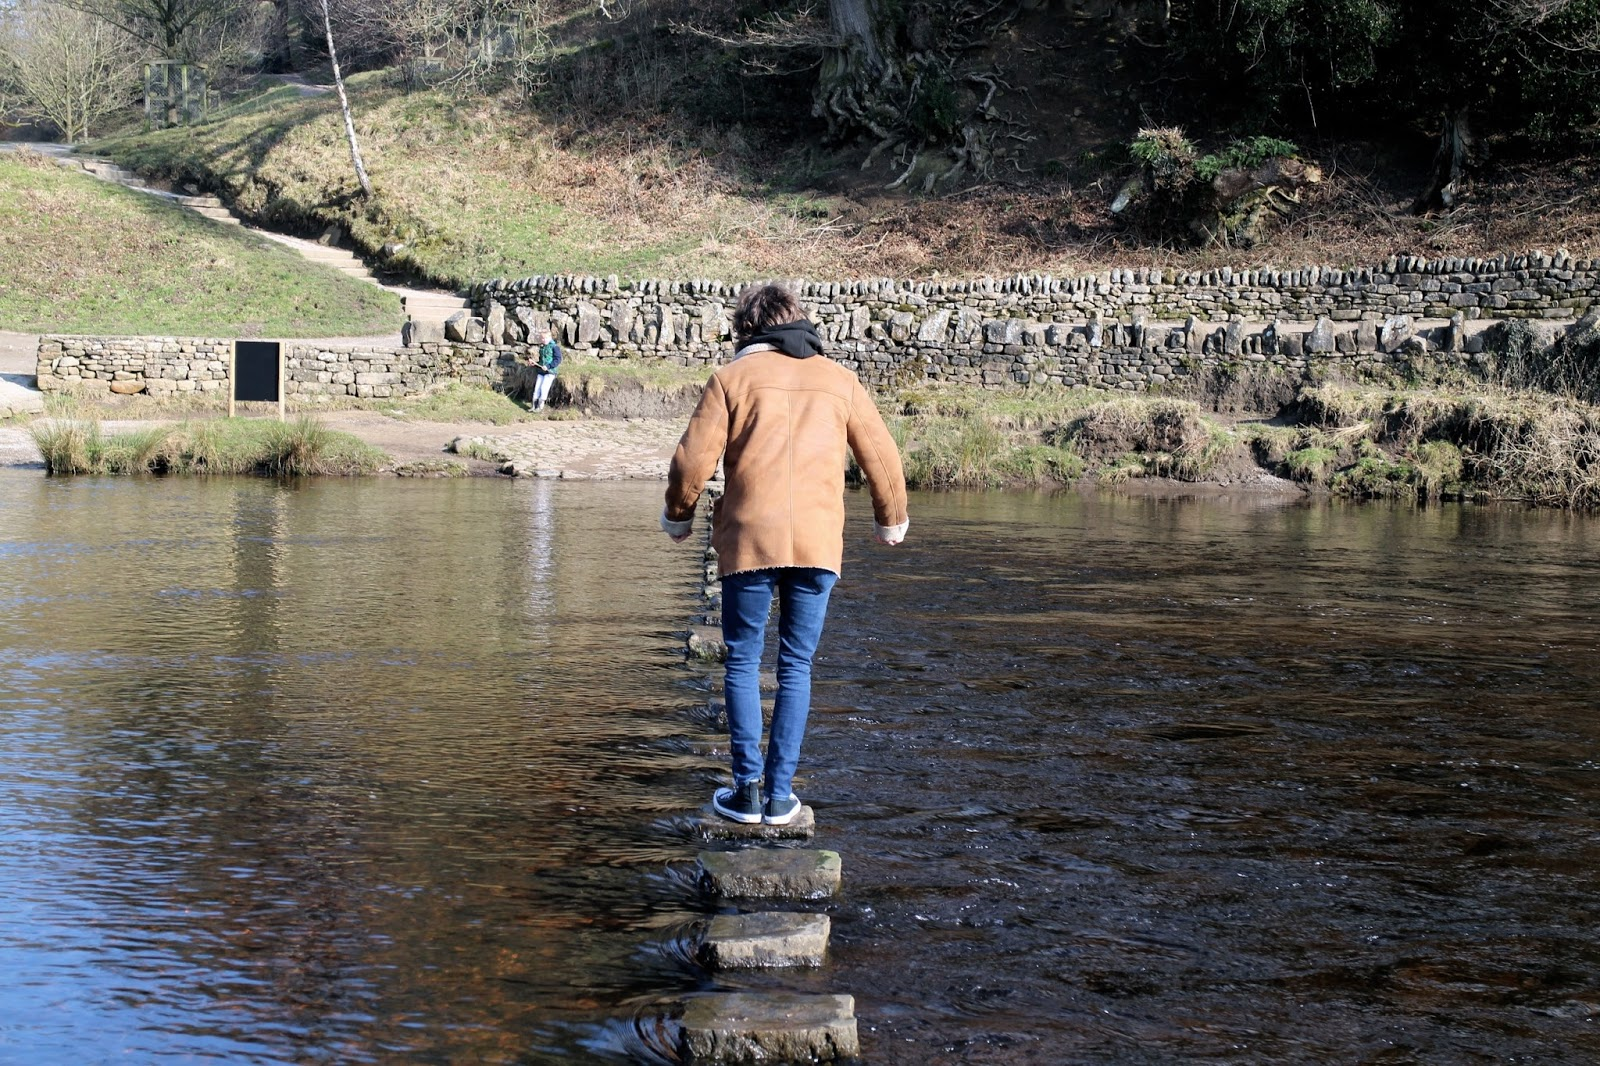 Using the stepping stones to get across the river at Bolton Abbey